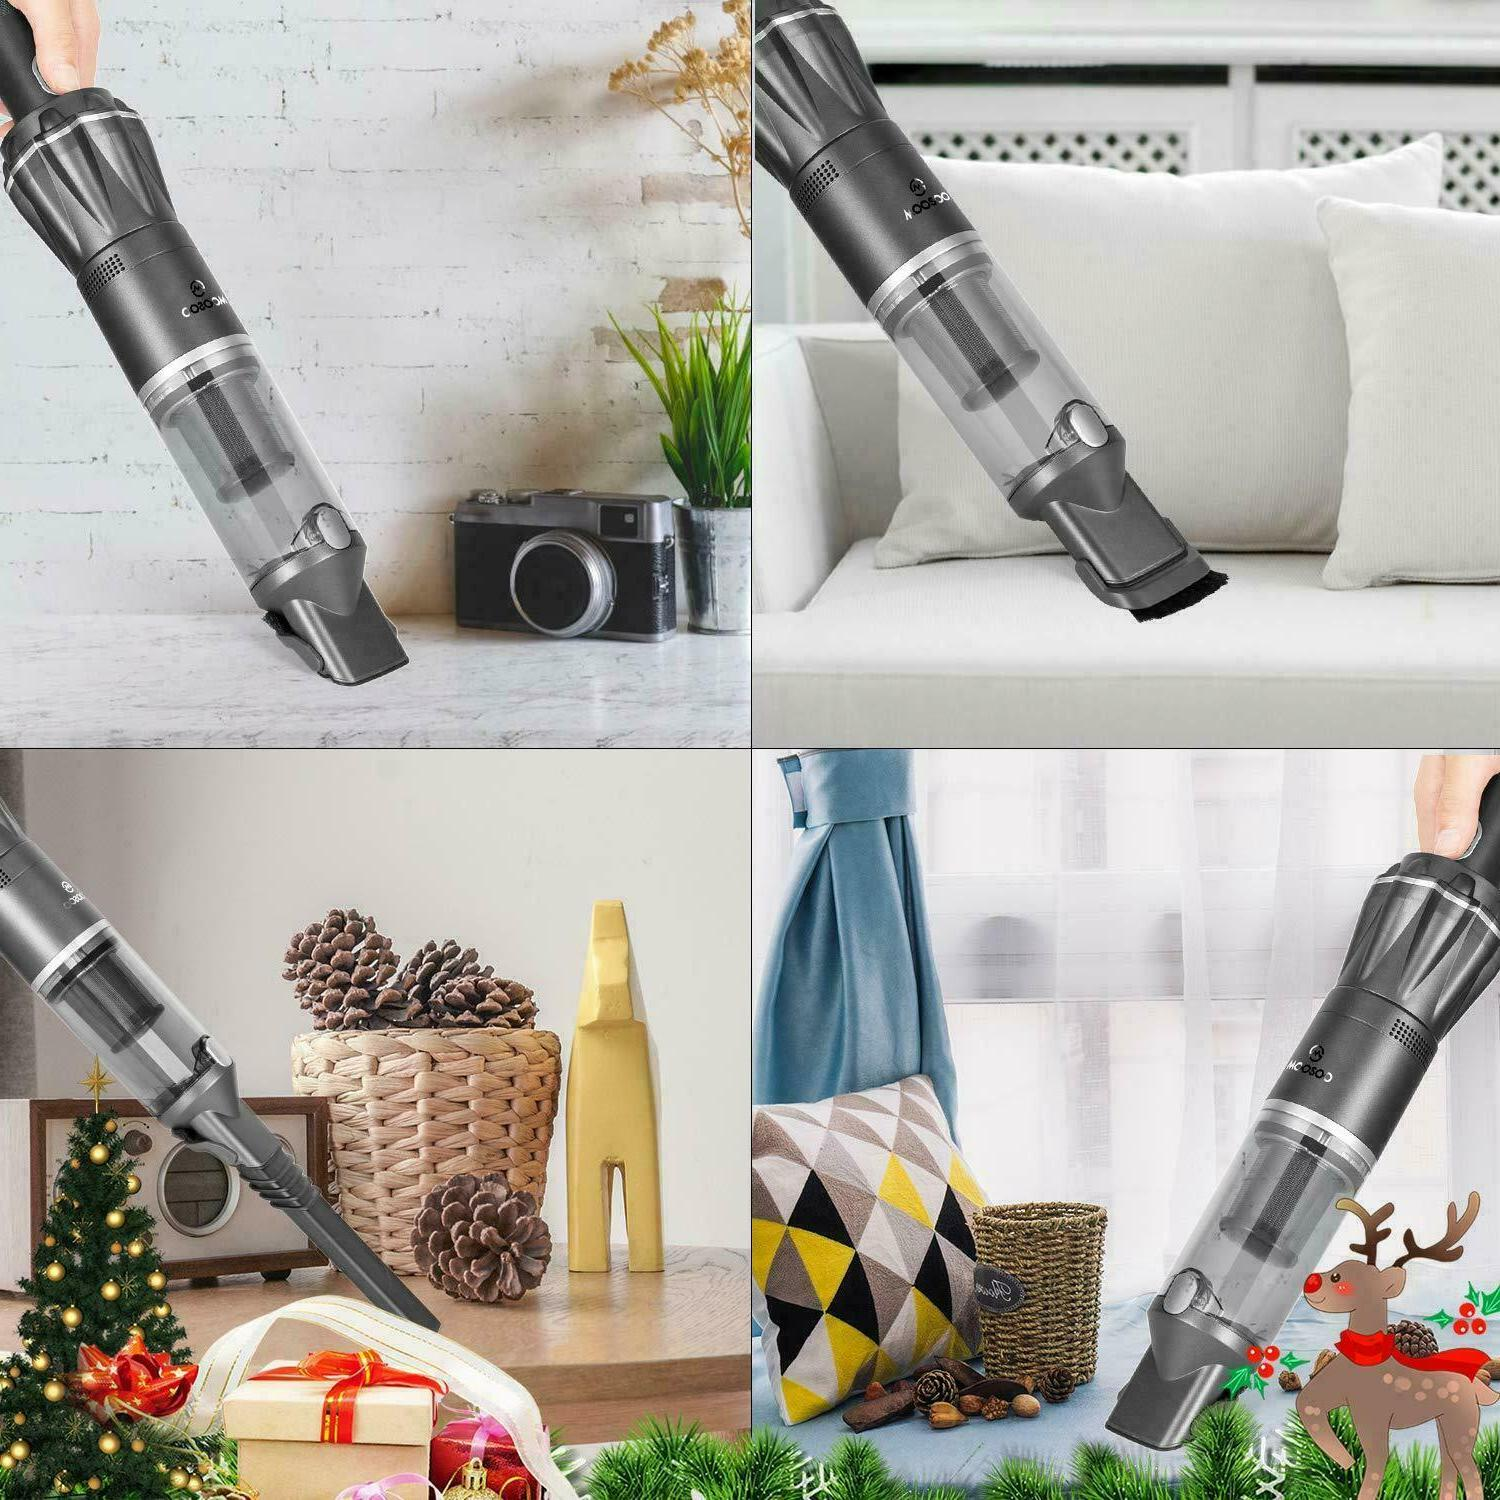 MOOSOO K12 Vacuum Strong Suction Cordless Cleaners